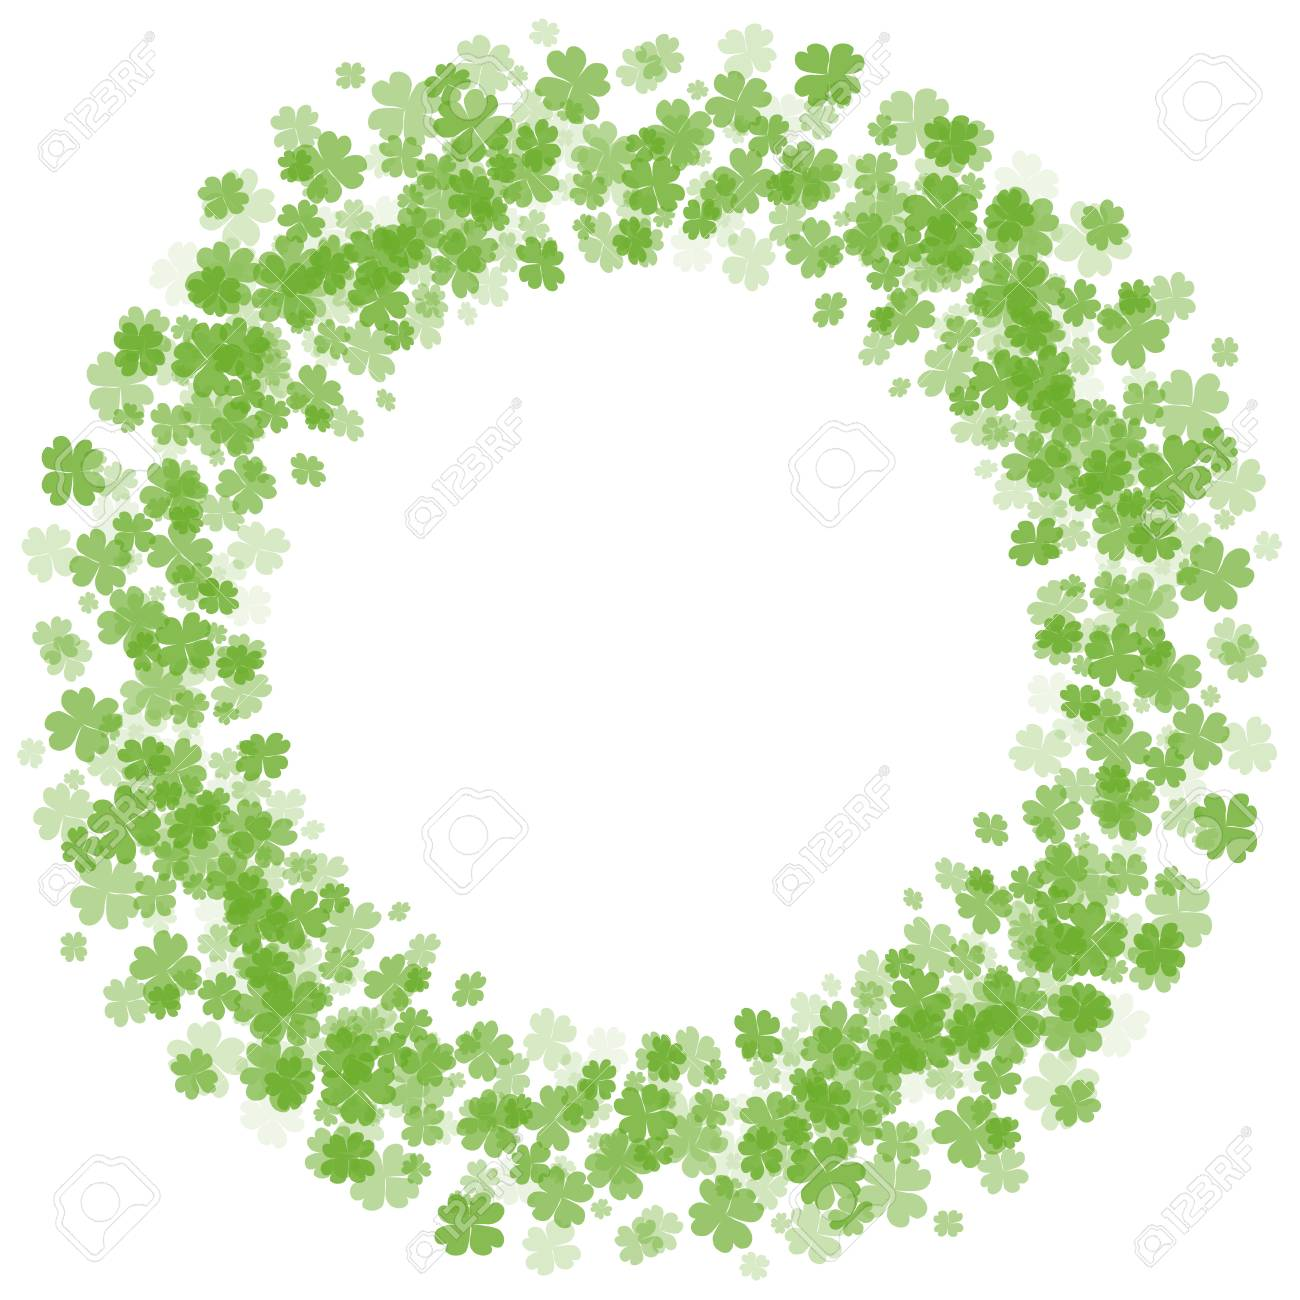 Round Frame With Four Leaf Clover St Patricks Day Vector